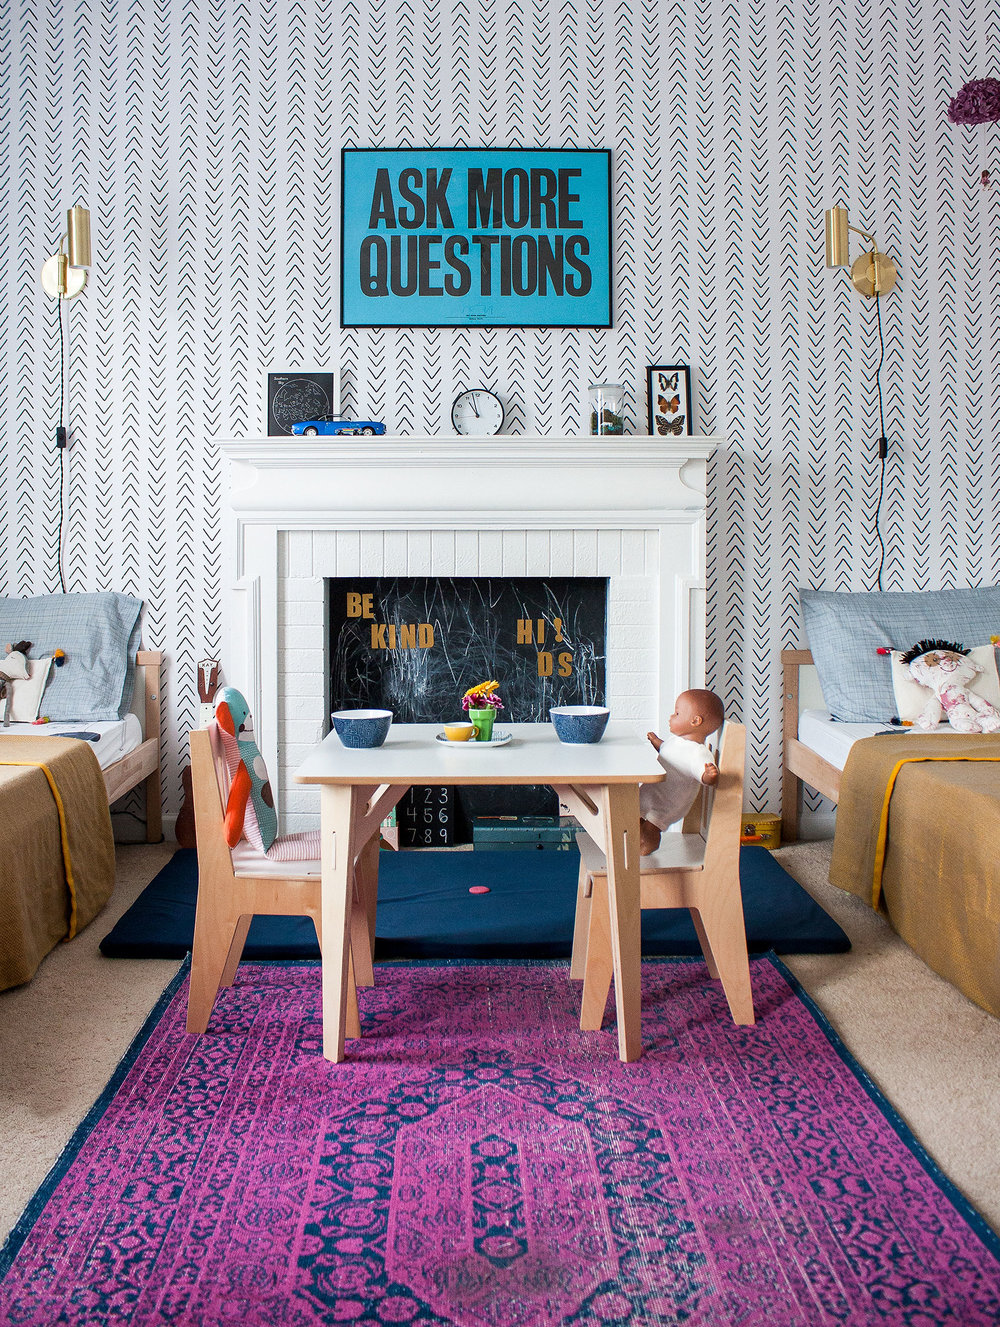 Ask More Questions Print   /   Wallpaper   /   Wooden Kid's Table & Chairs